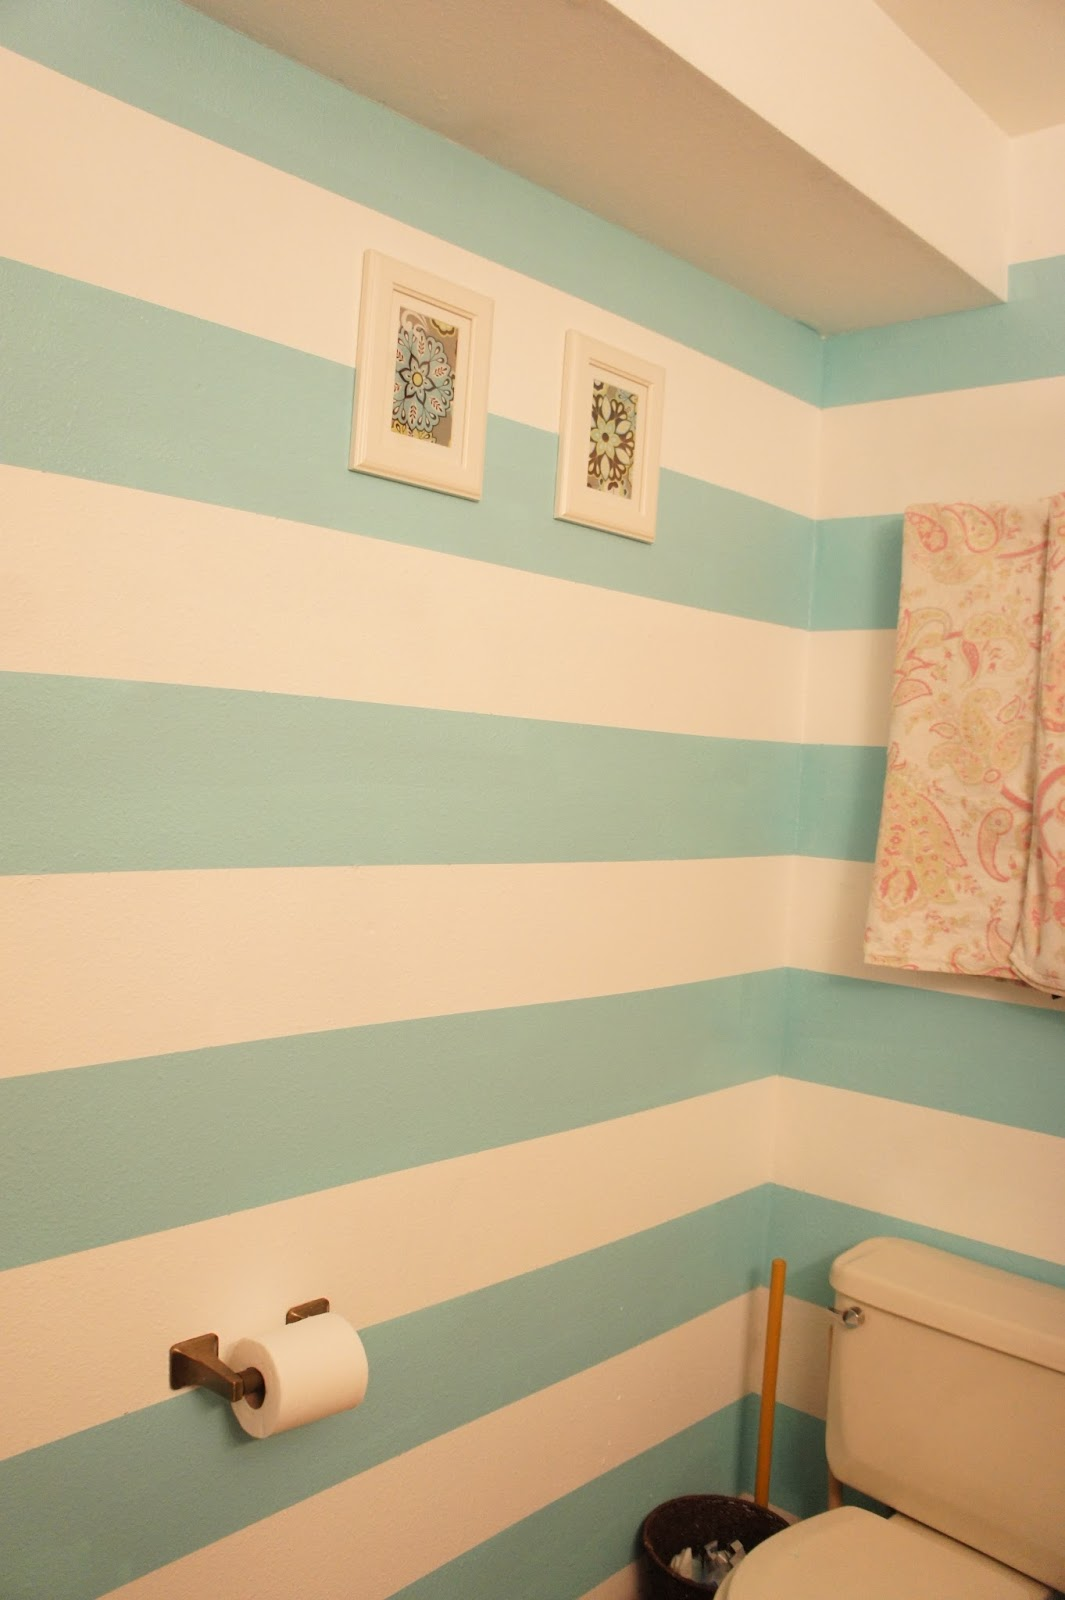 Striped bathroom walls - Joan Ellen Cornell